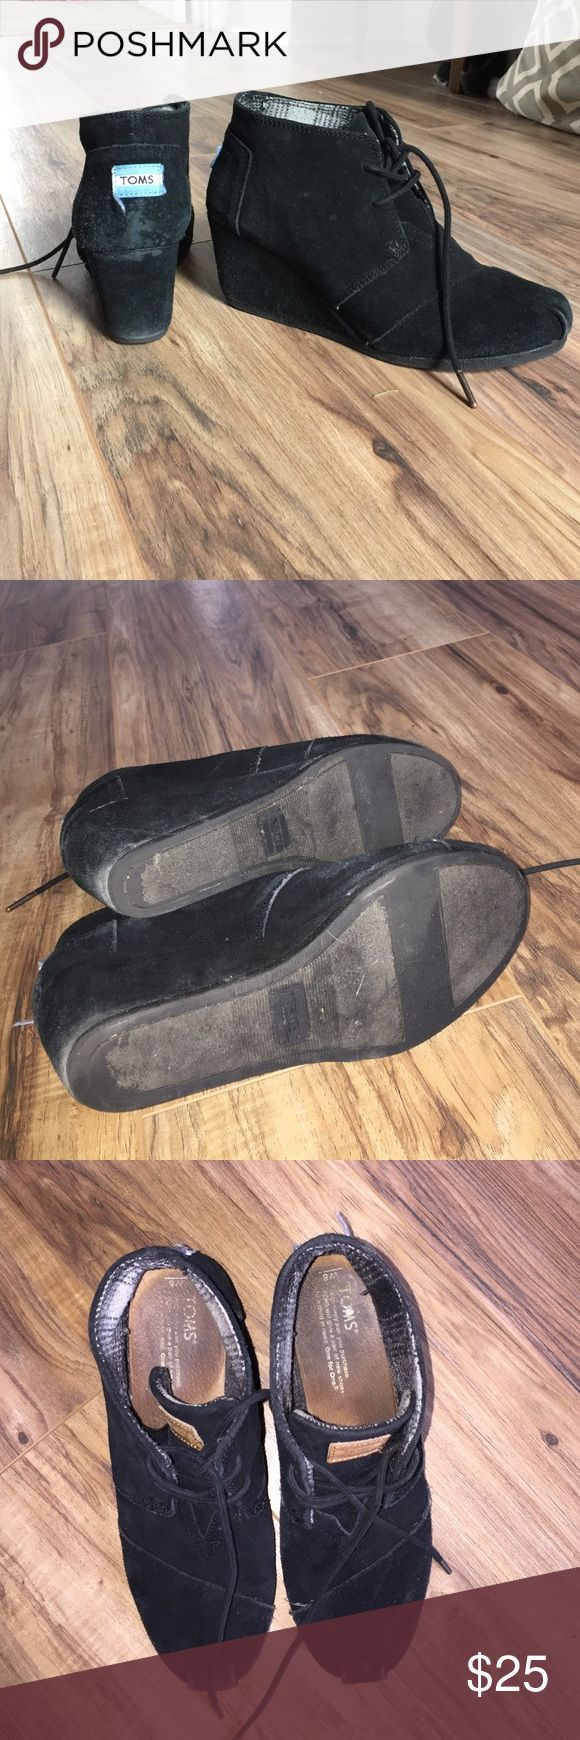 Toms desert wedges Used condition in toes and heels. Open to reasonable offers TOMS Shoes Wedges